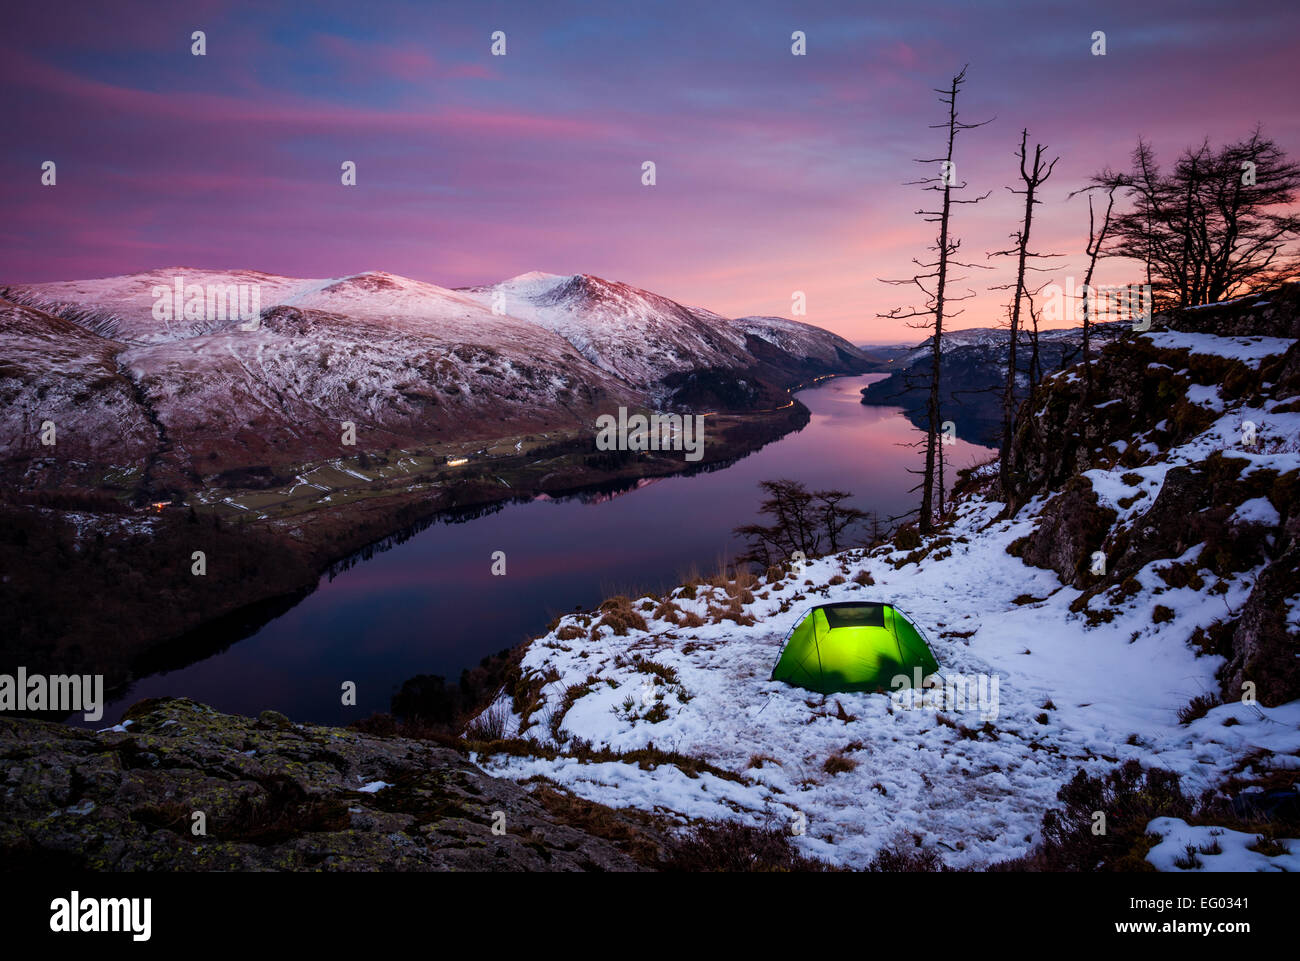 Lit wild camp tent at twilight after a beautiful pink sunset at Raven Crag, Lake Thirlmere in the English Lake District. - Stock Image